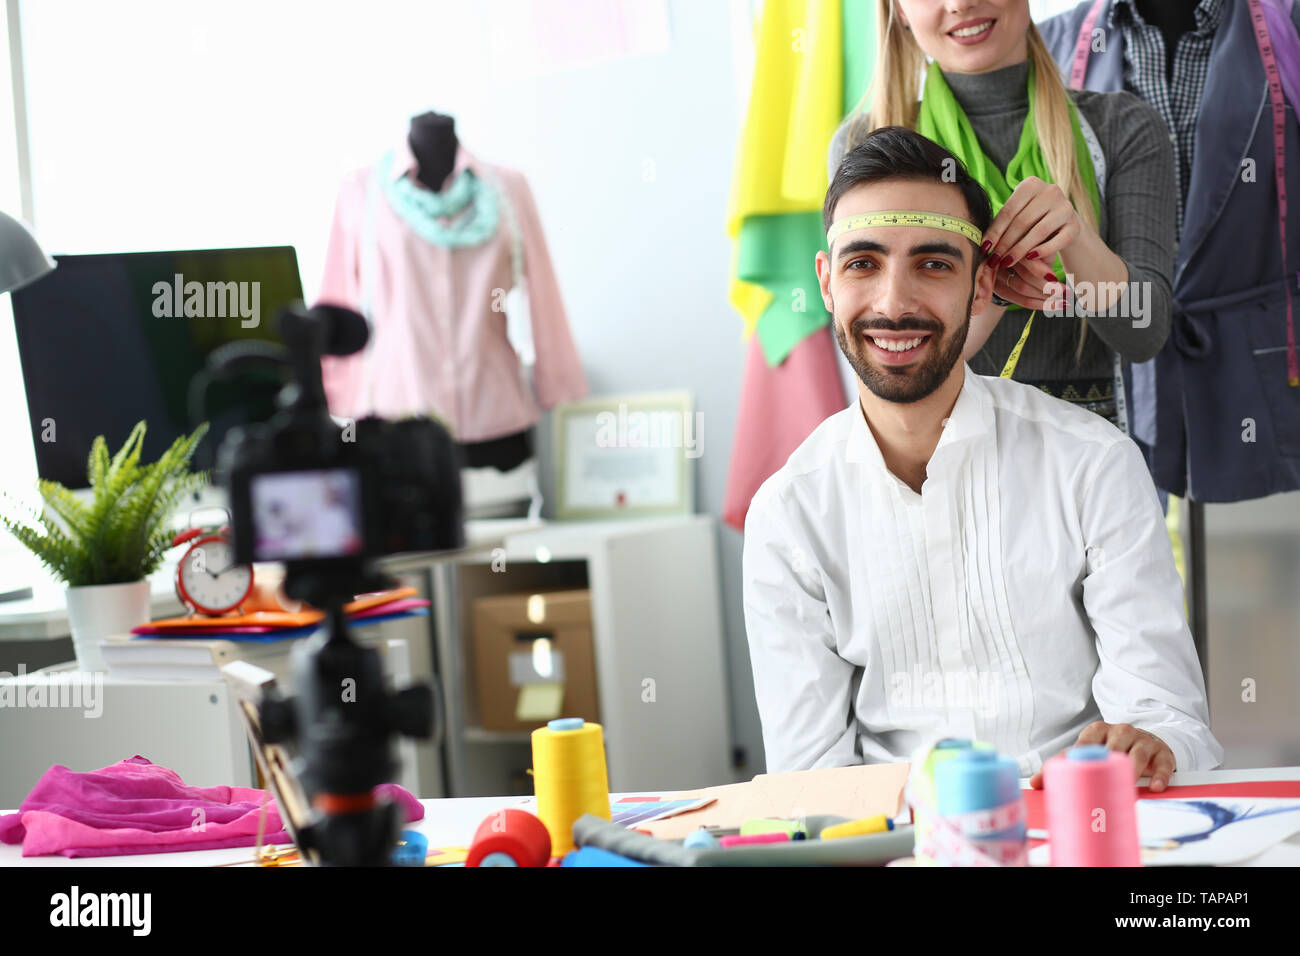 Funny Fashion Vlog Clothes Production Concept - Stock Image